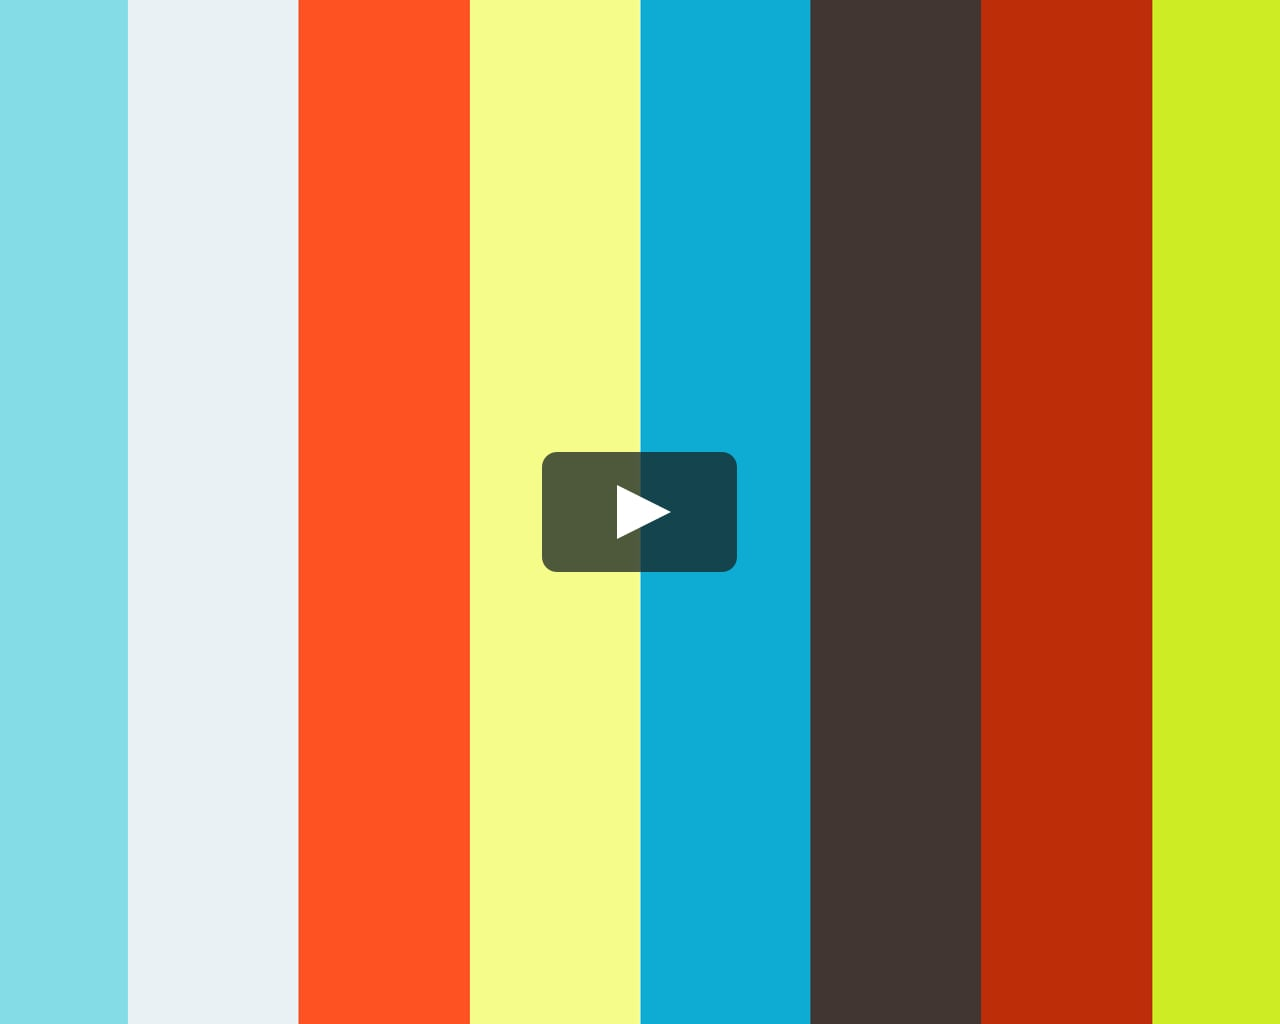 5 minute digital countdown timer download source file on vimeo